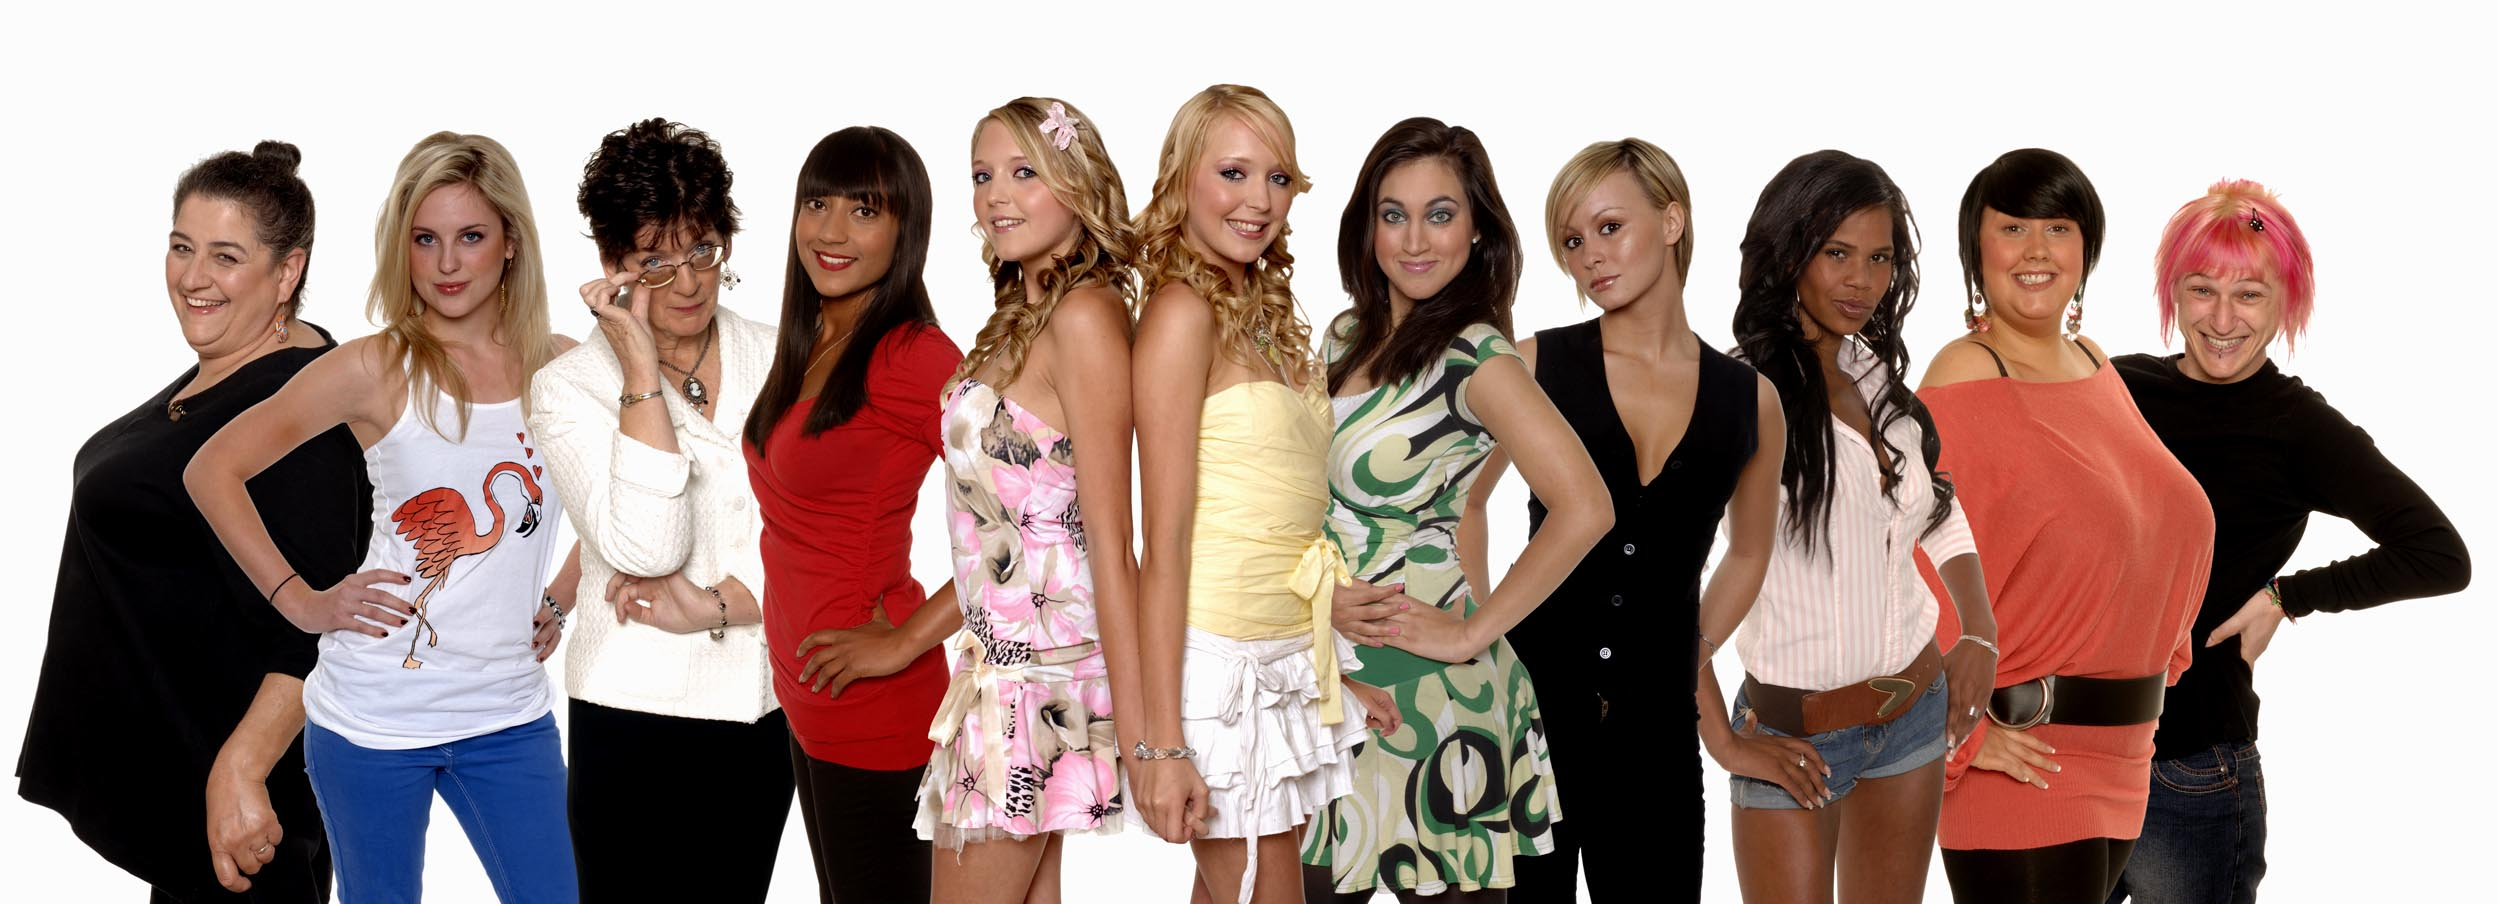 Celebrity Big Brother's all-female line-up isn't the first in its series history – remember 2007?